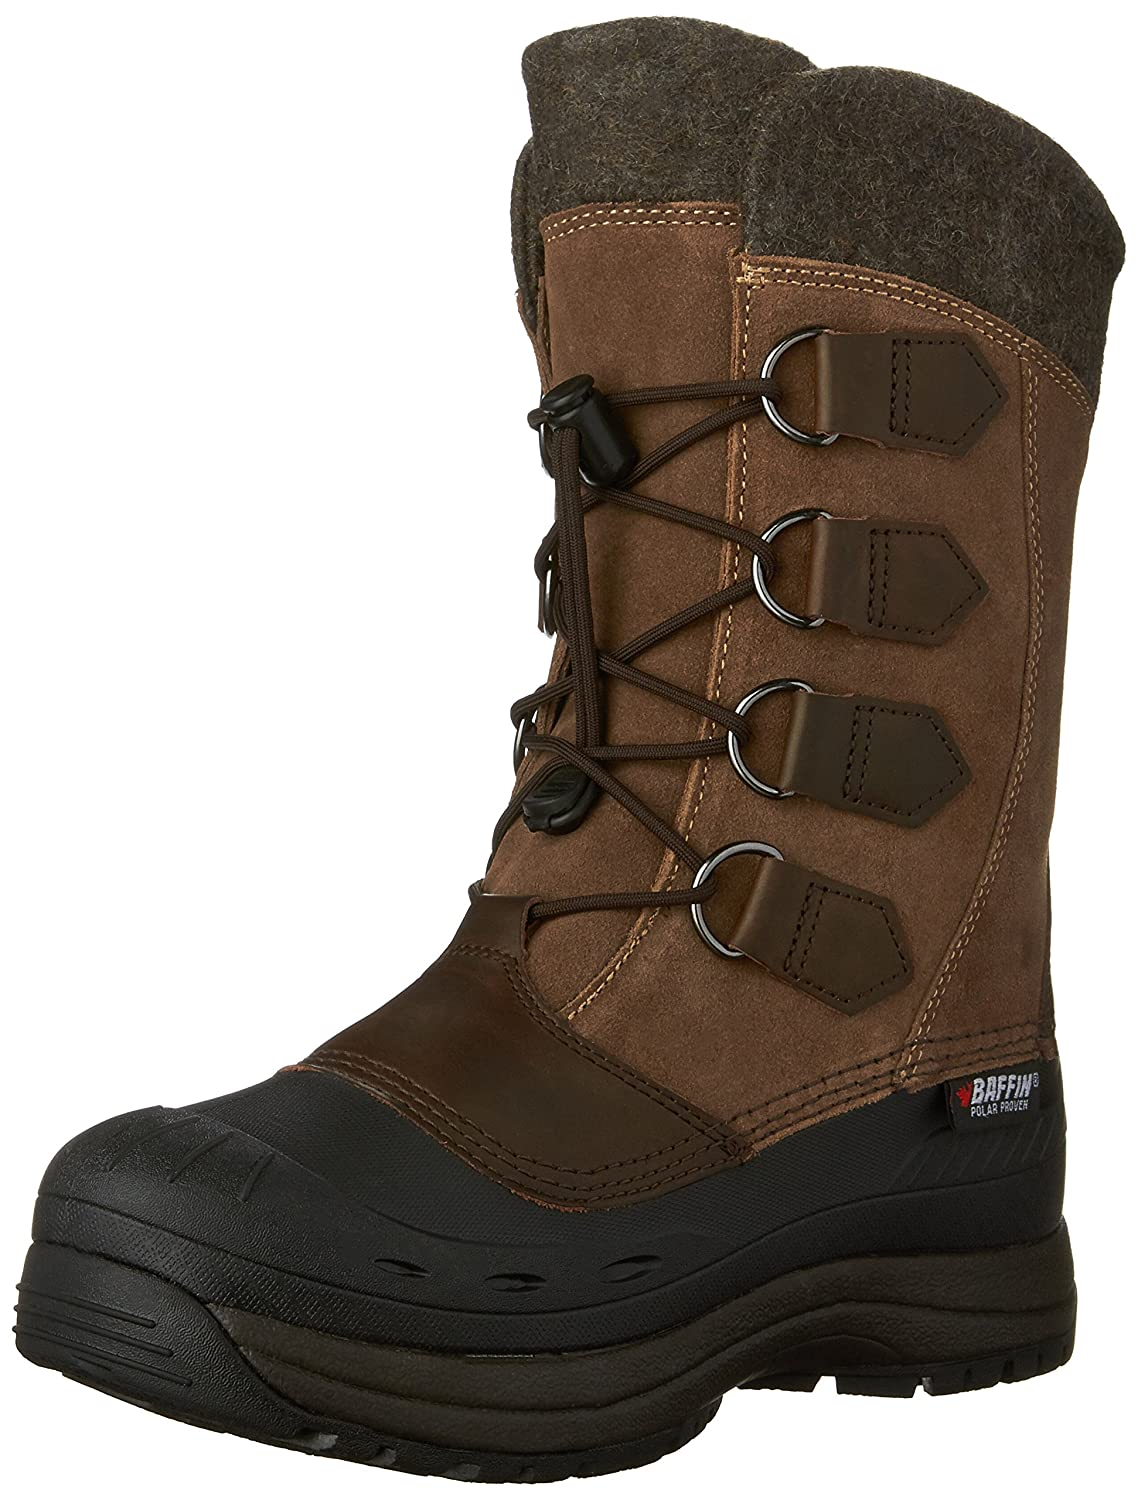 Brown Baffin Women's Kara-W-40-Degree C Boot, Removable Liner